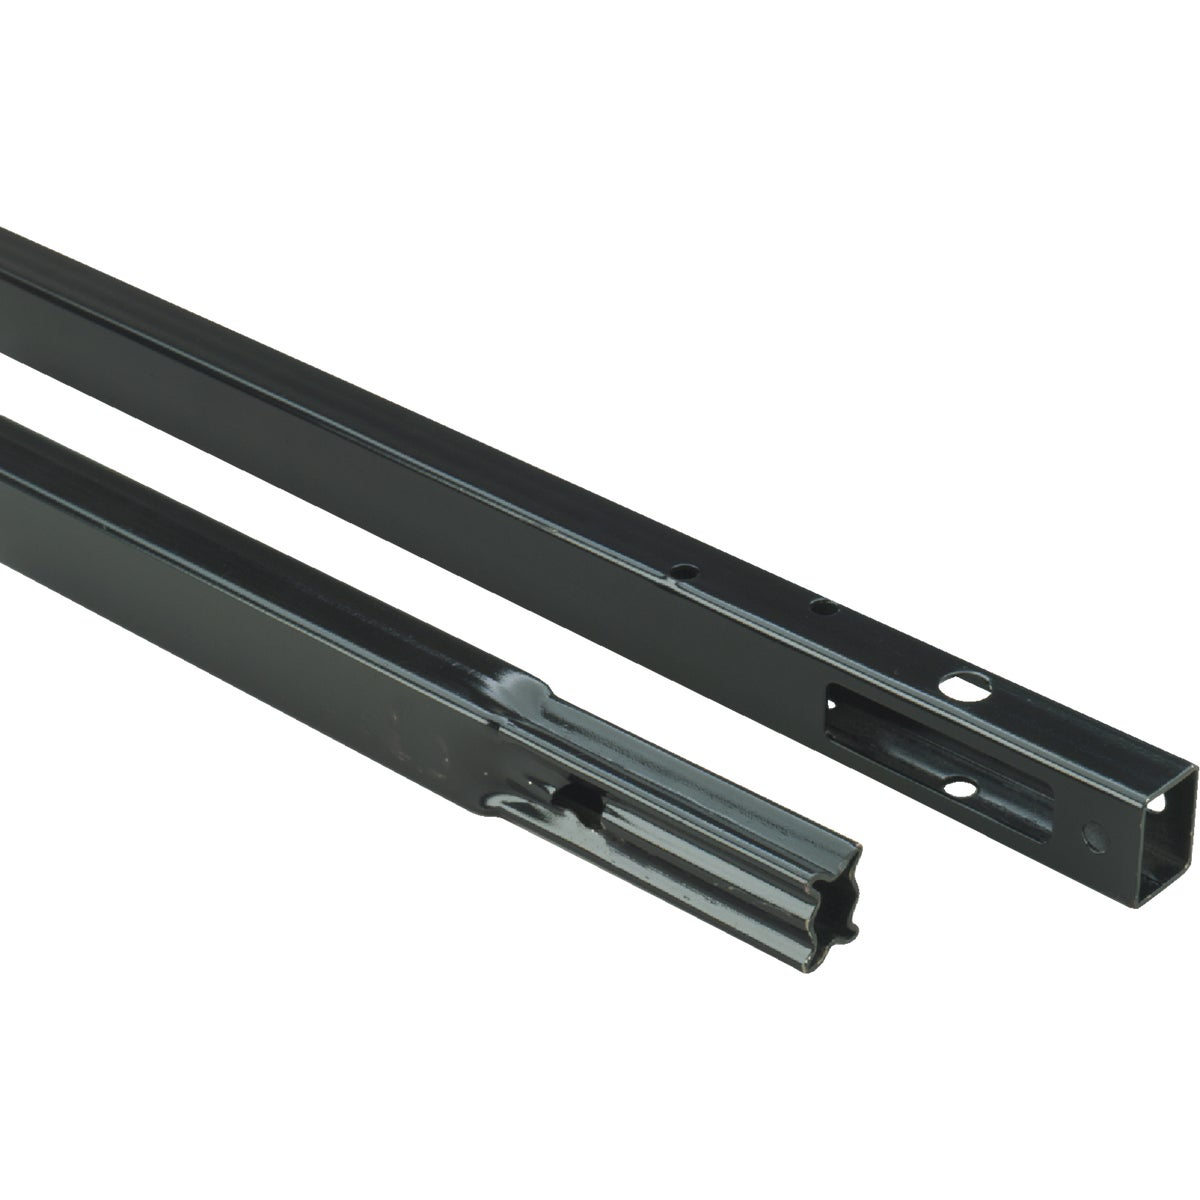 10' Rail Extension Kit